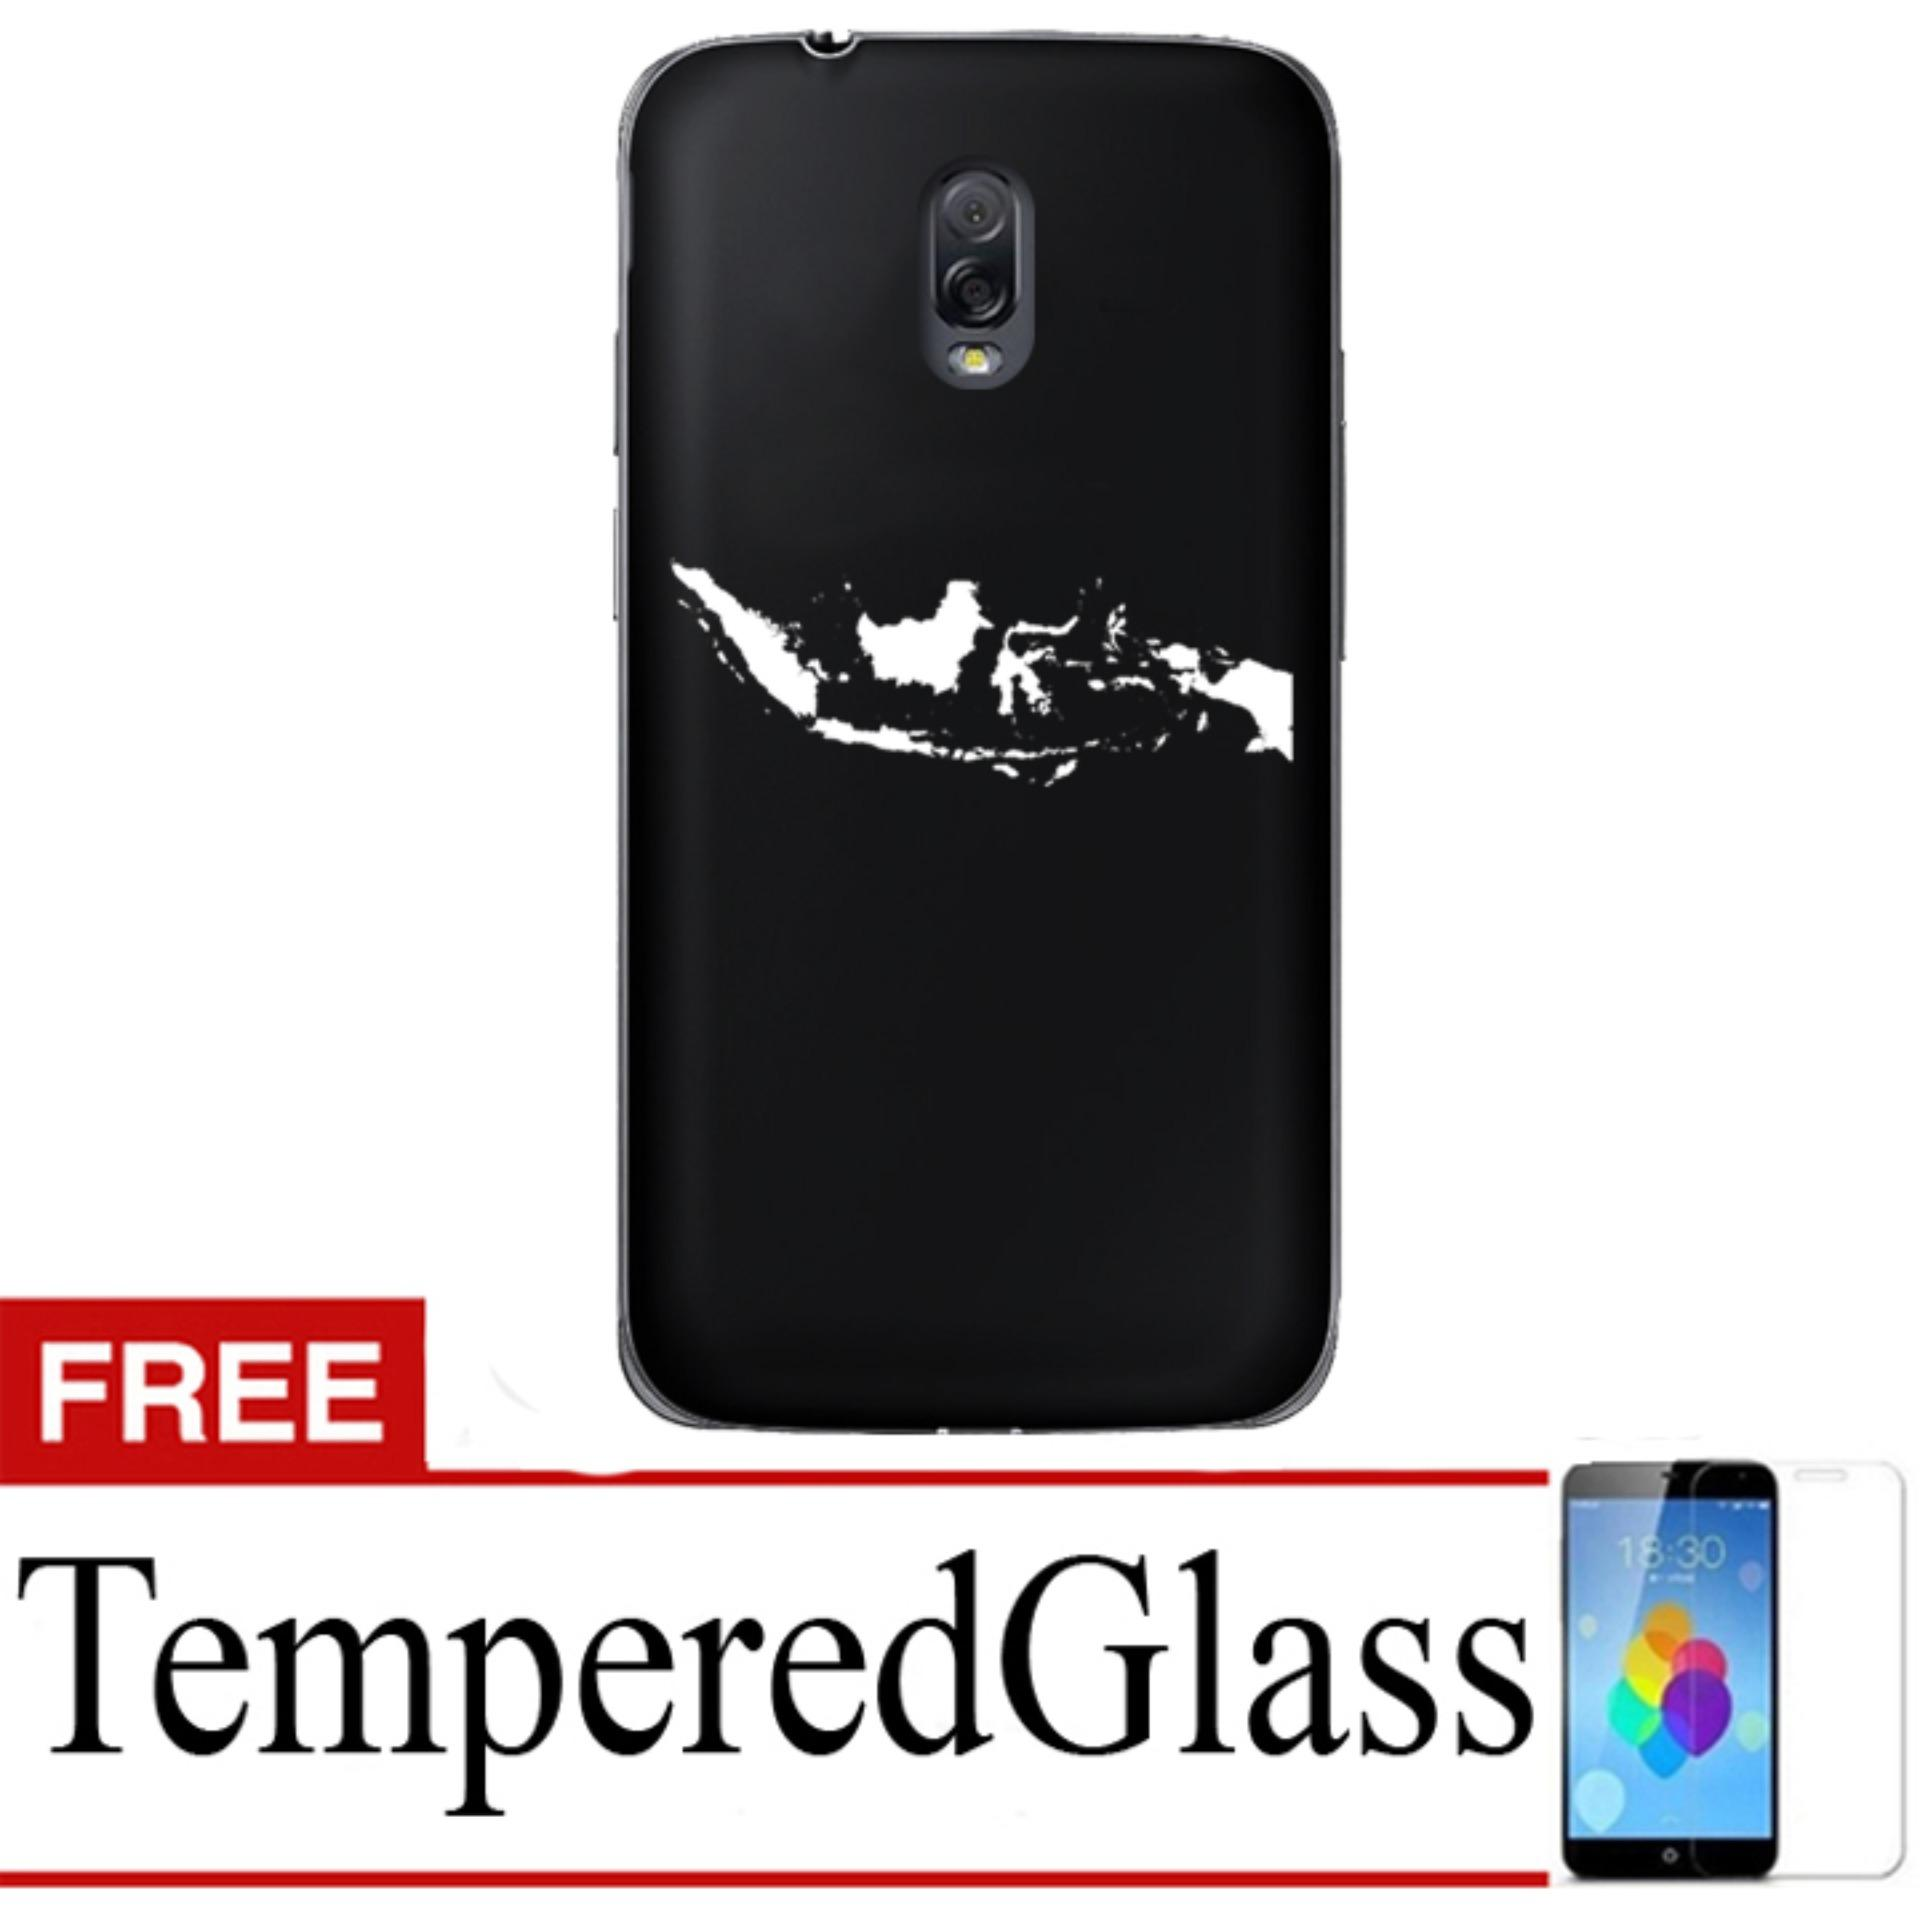 Case Presiden Jokowi for Samsung Galaxy J7 Plus + Free TemperredGlass - Hitam